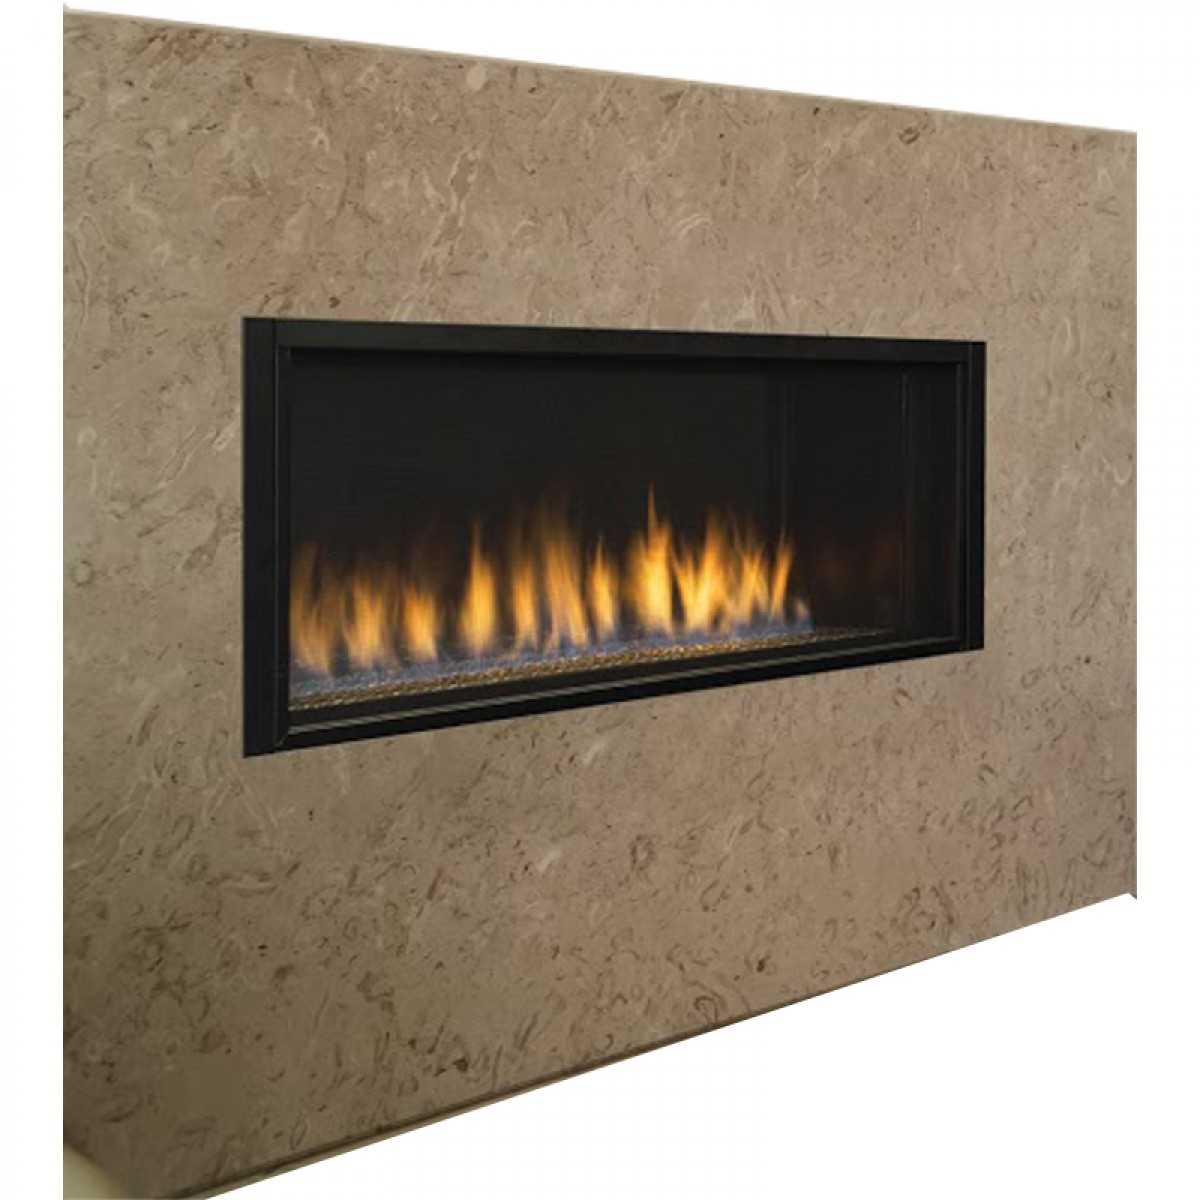 fireplace homepage fireplaces slider linear boulevard white hearth products vent direct mountain gas